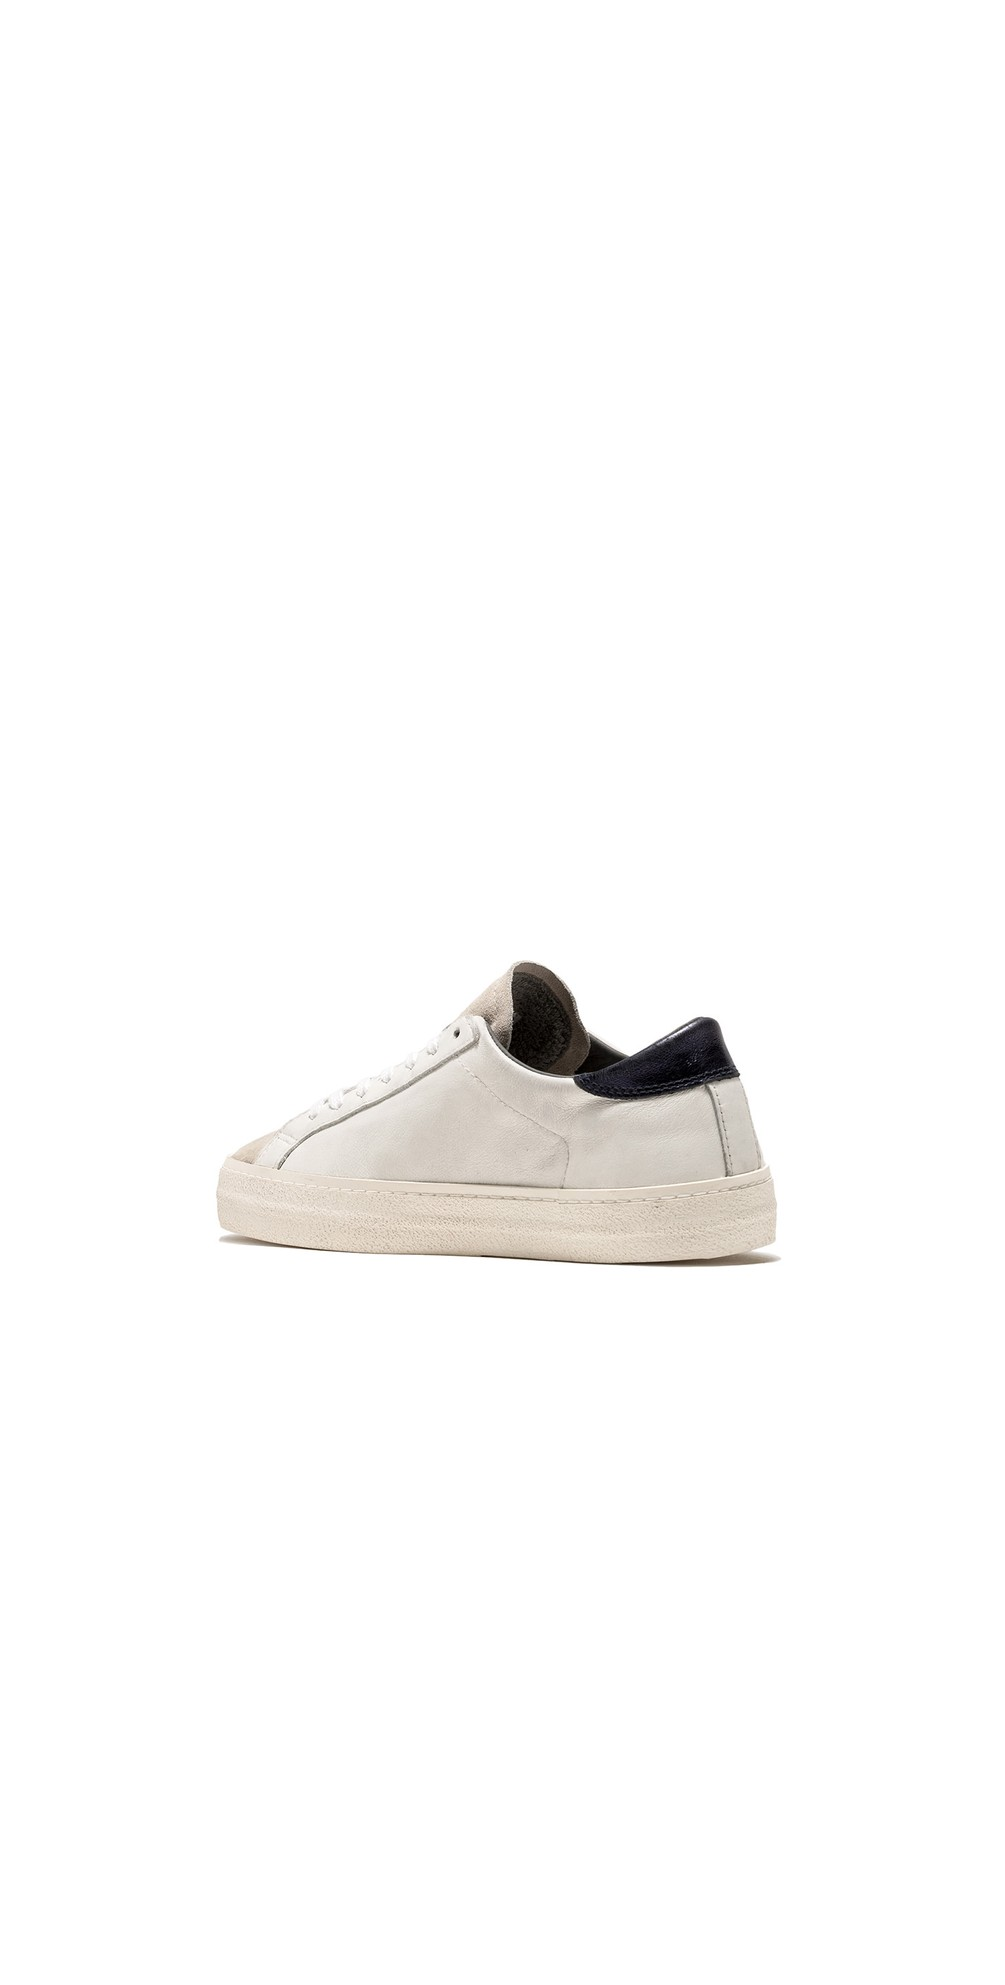 Hill Low Glam Low Top Sneaker main image